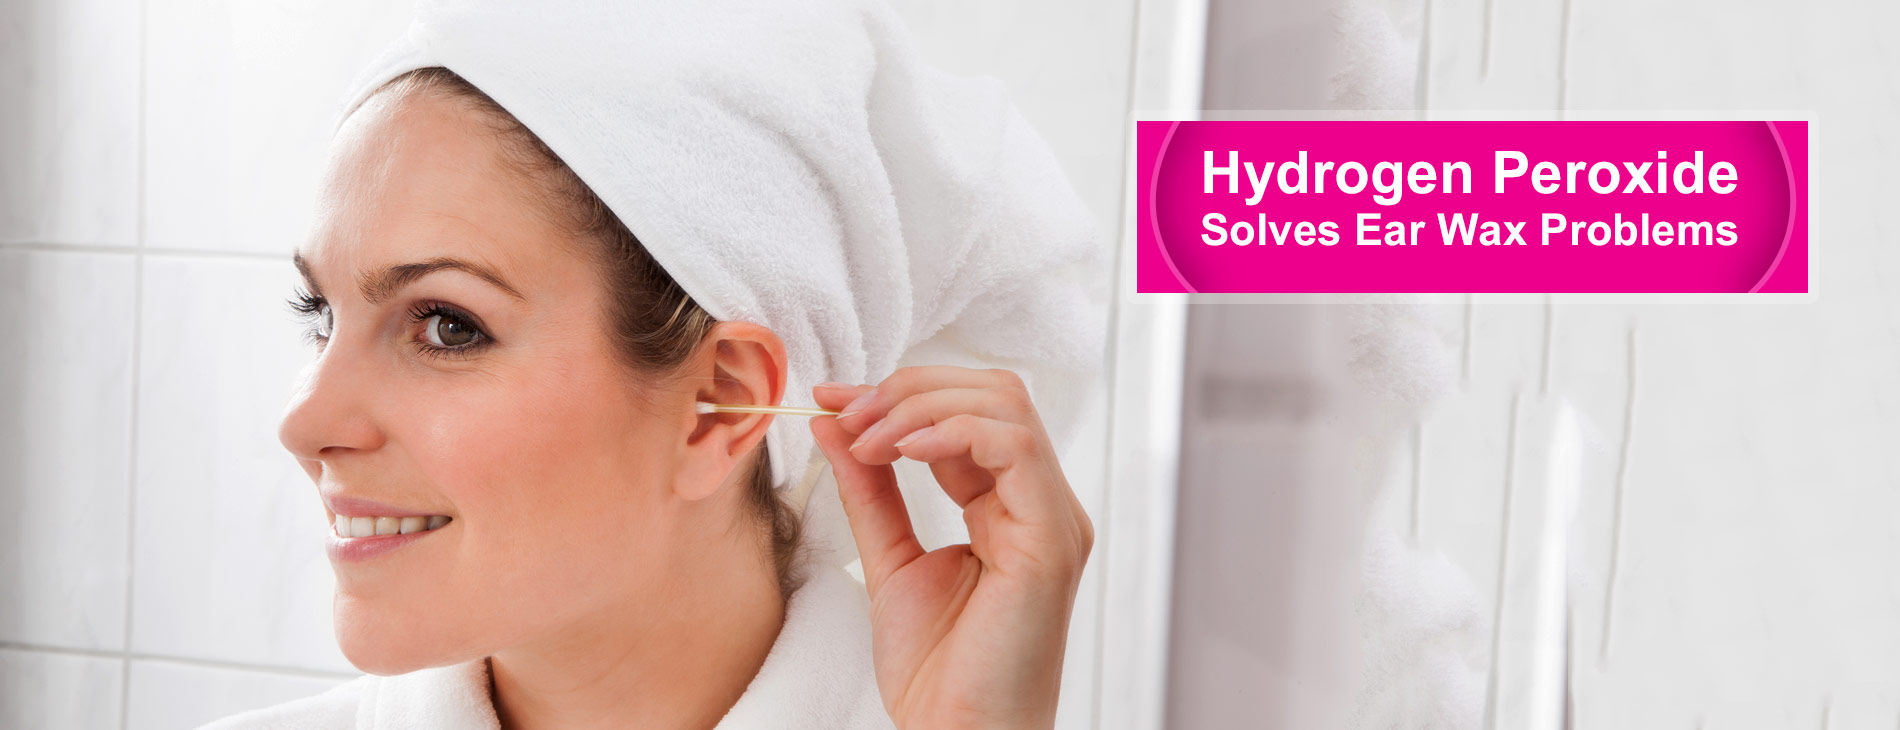 Hydrogen-Peroxide-Solves-Ear-Wax-Problems